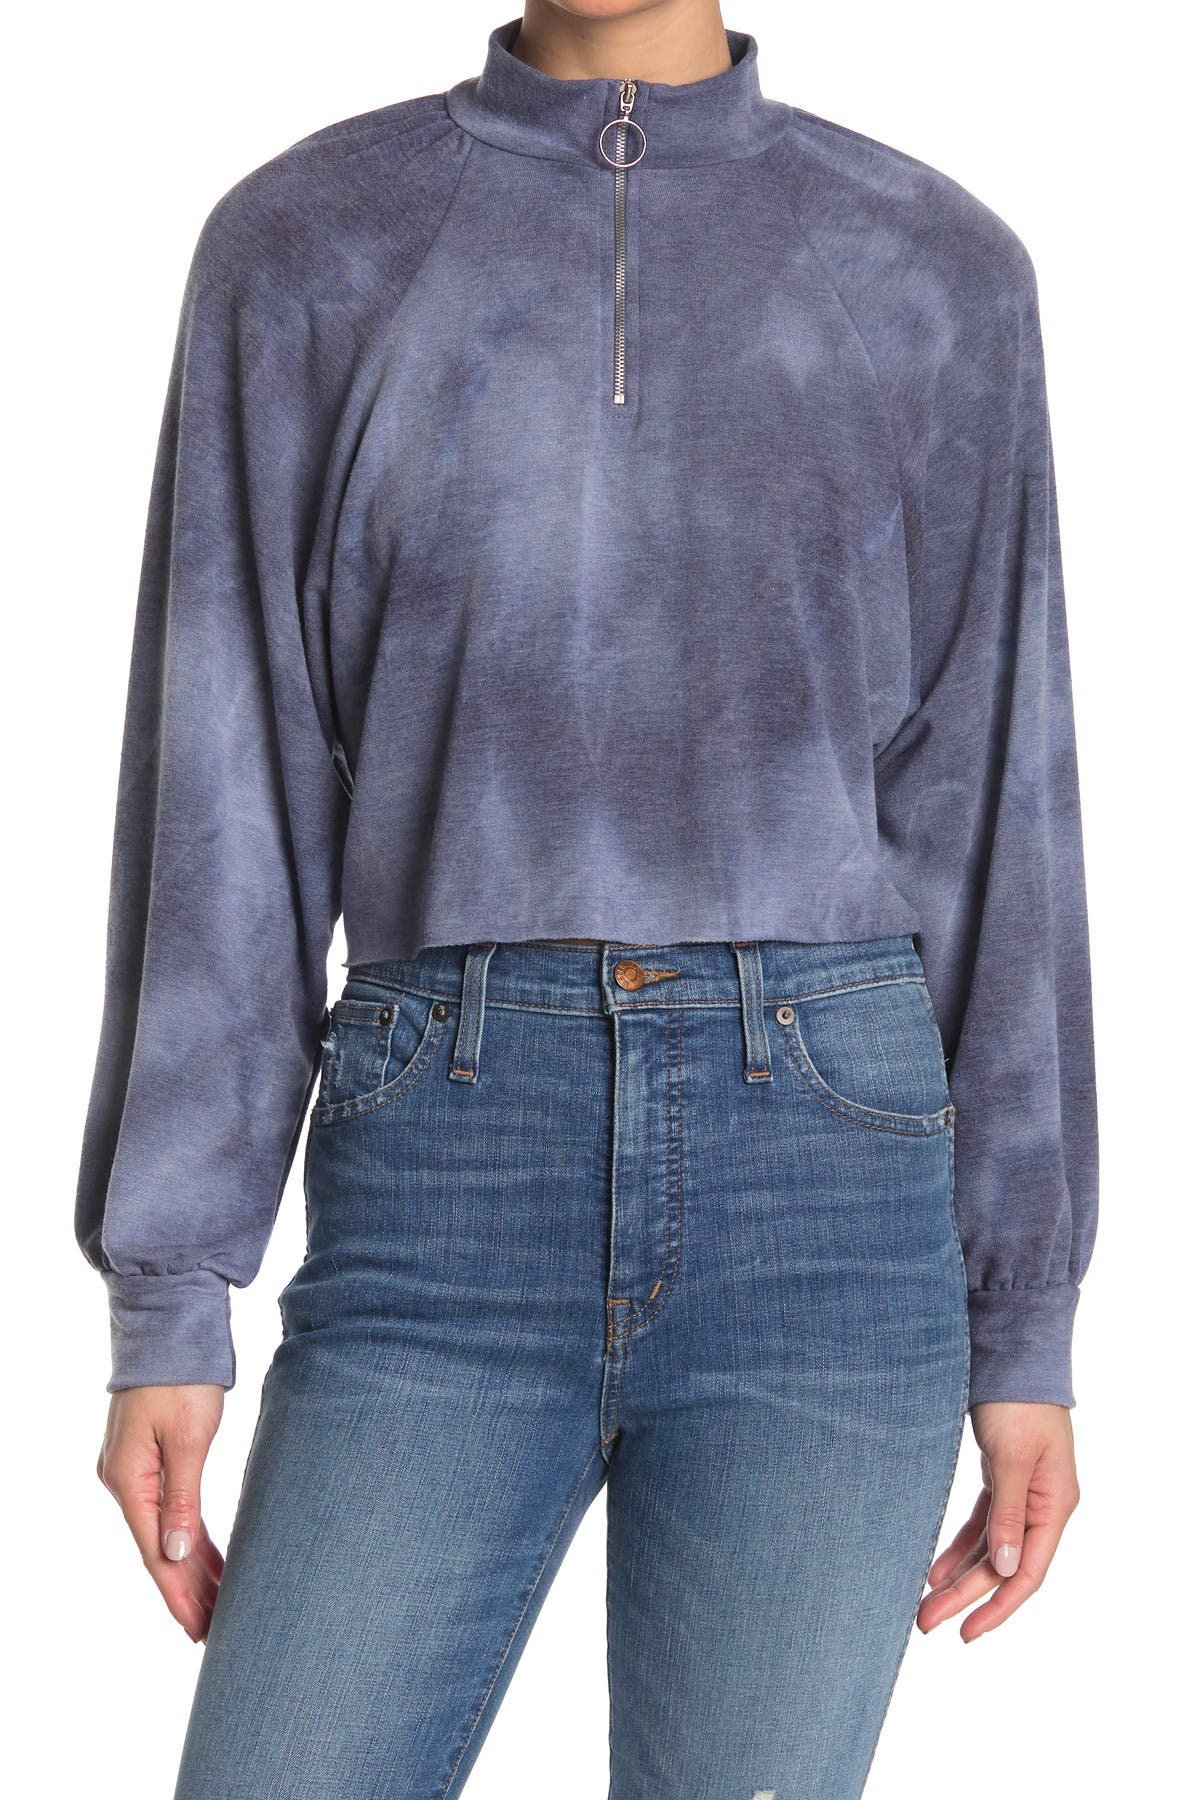 Image of Abound Tie Dye Raglan Half Zip Crop Pullover